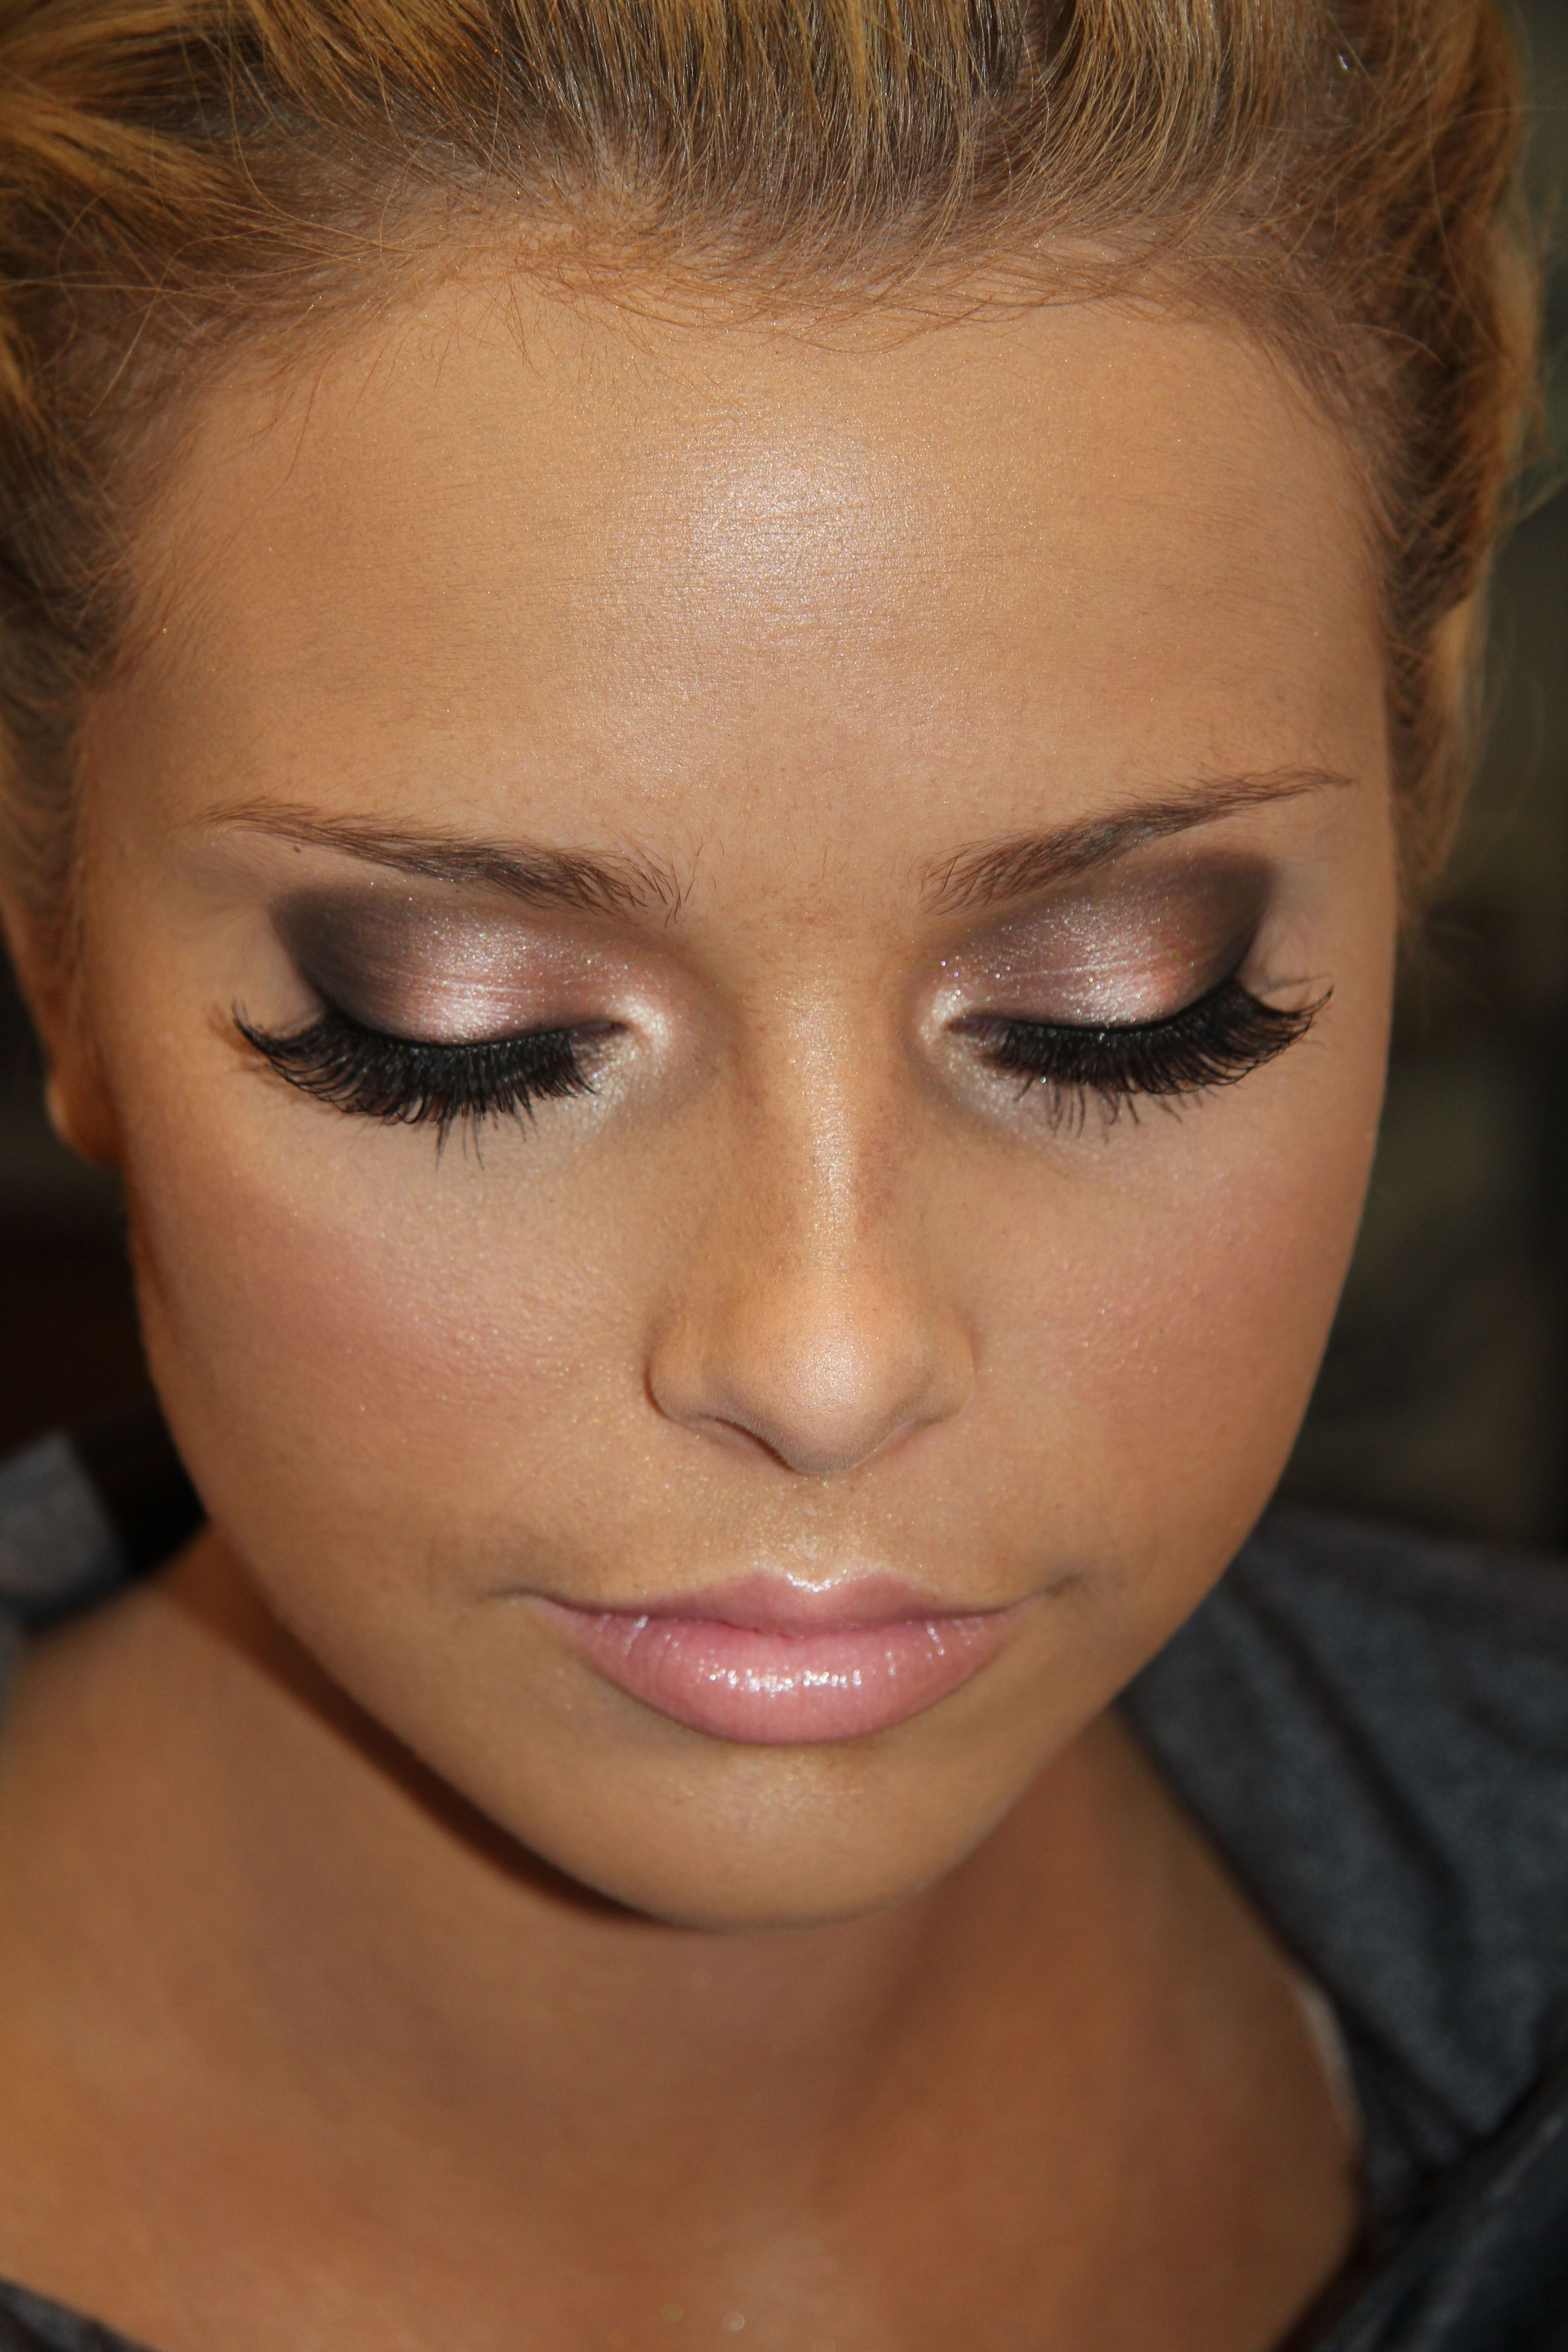 Make your eyes pop in photos with these smokey eyeshadow